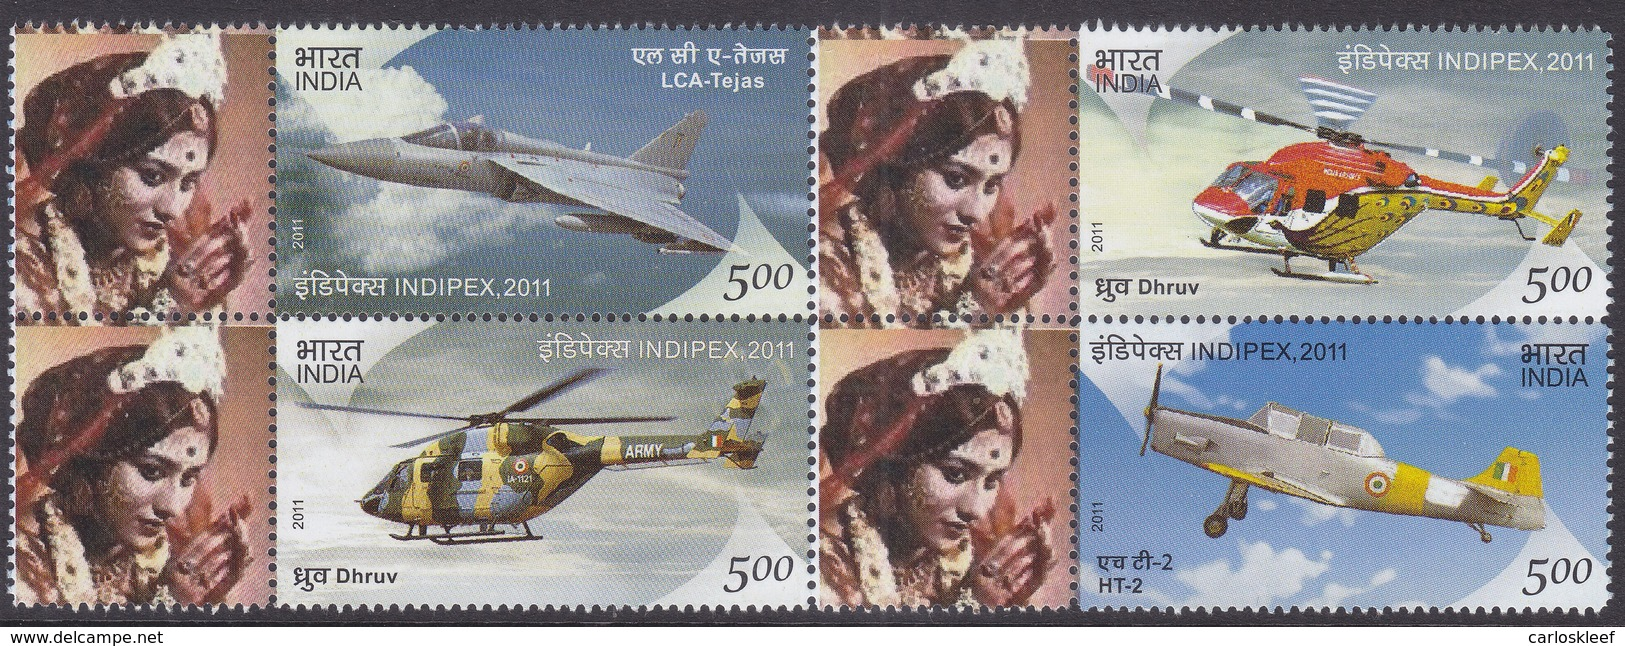 India - My Stamp New Issue 12-02-2011 (Yvert 2375-2378) - India